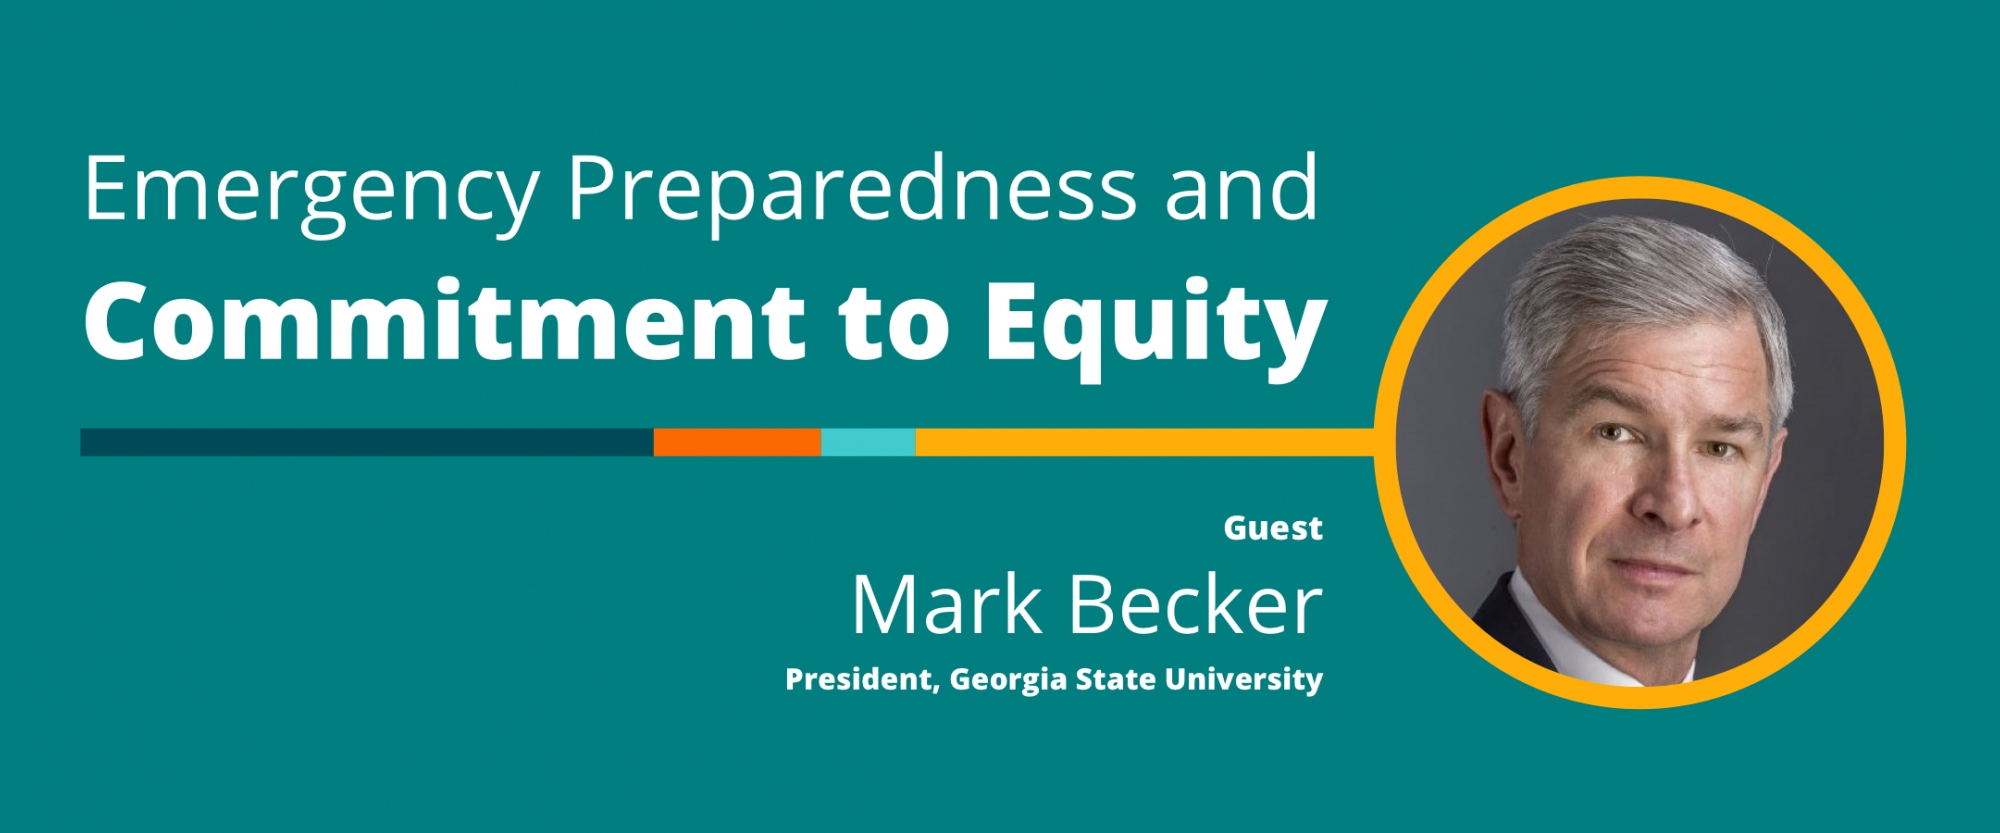 Emergency Preparedness and Commitment to Equity